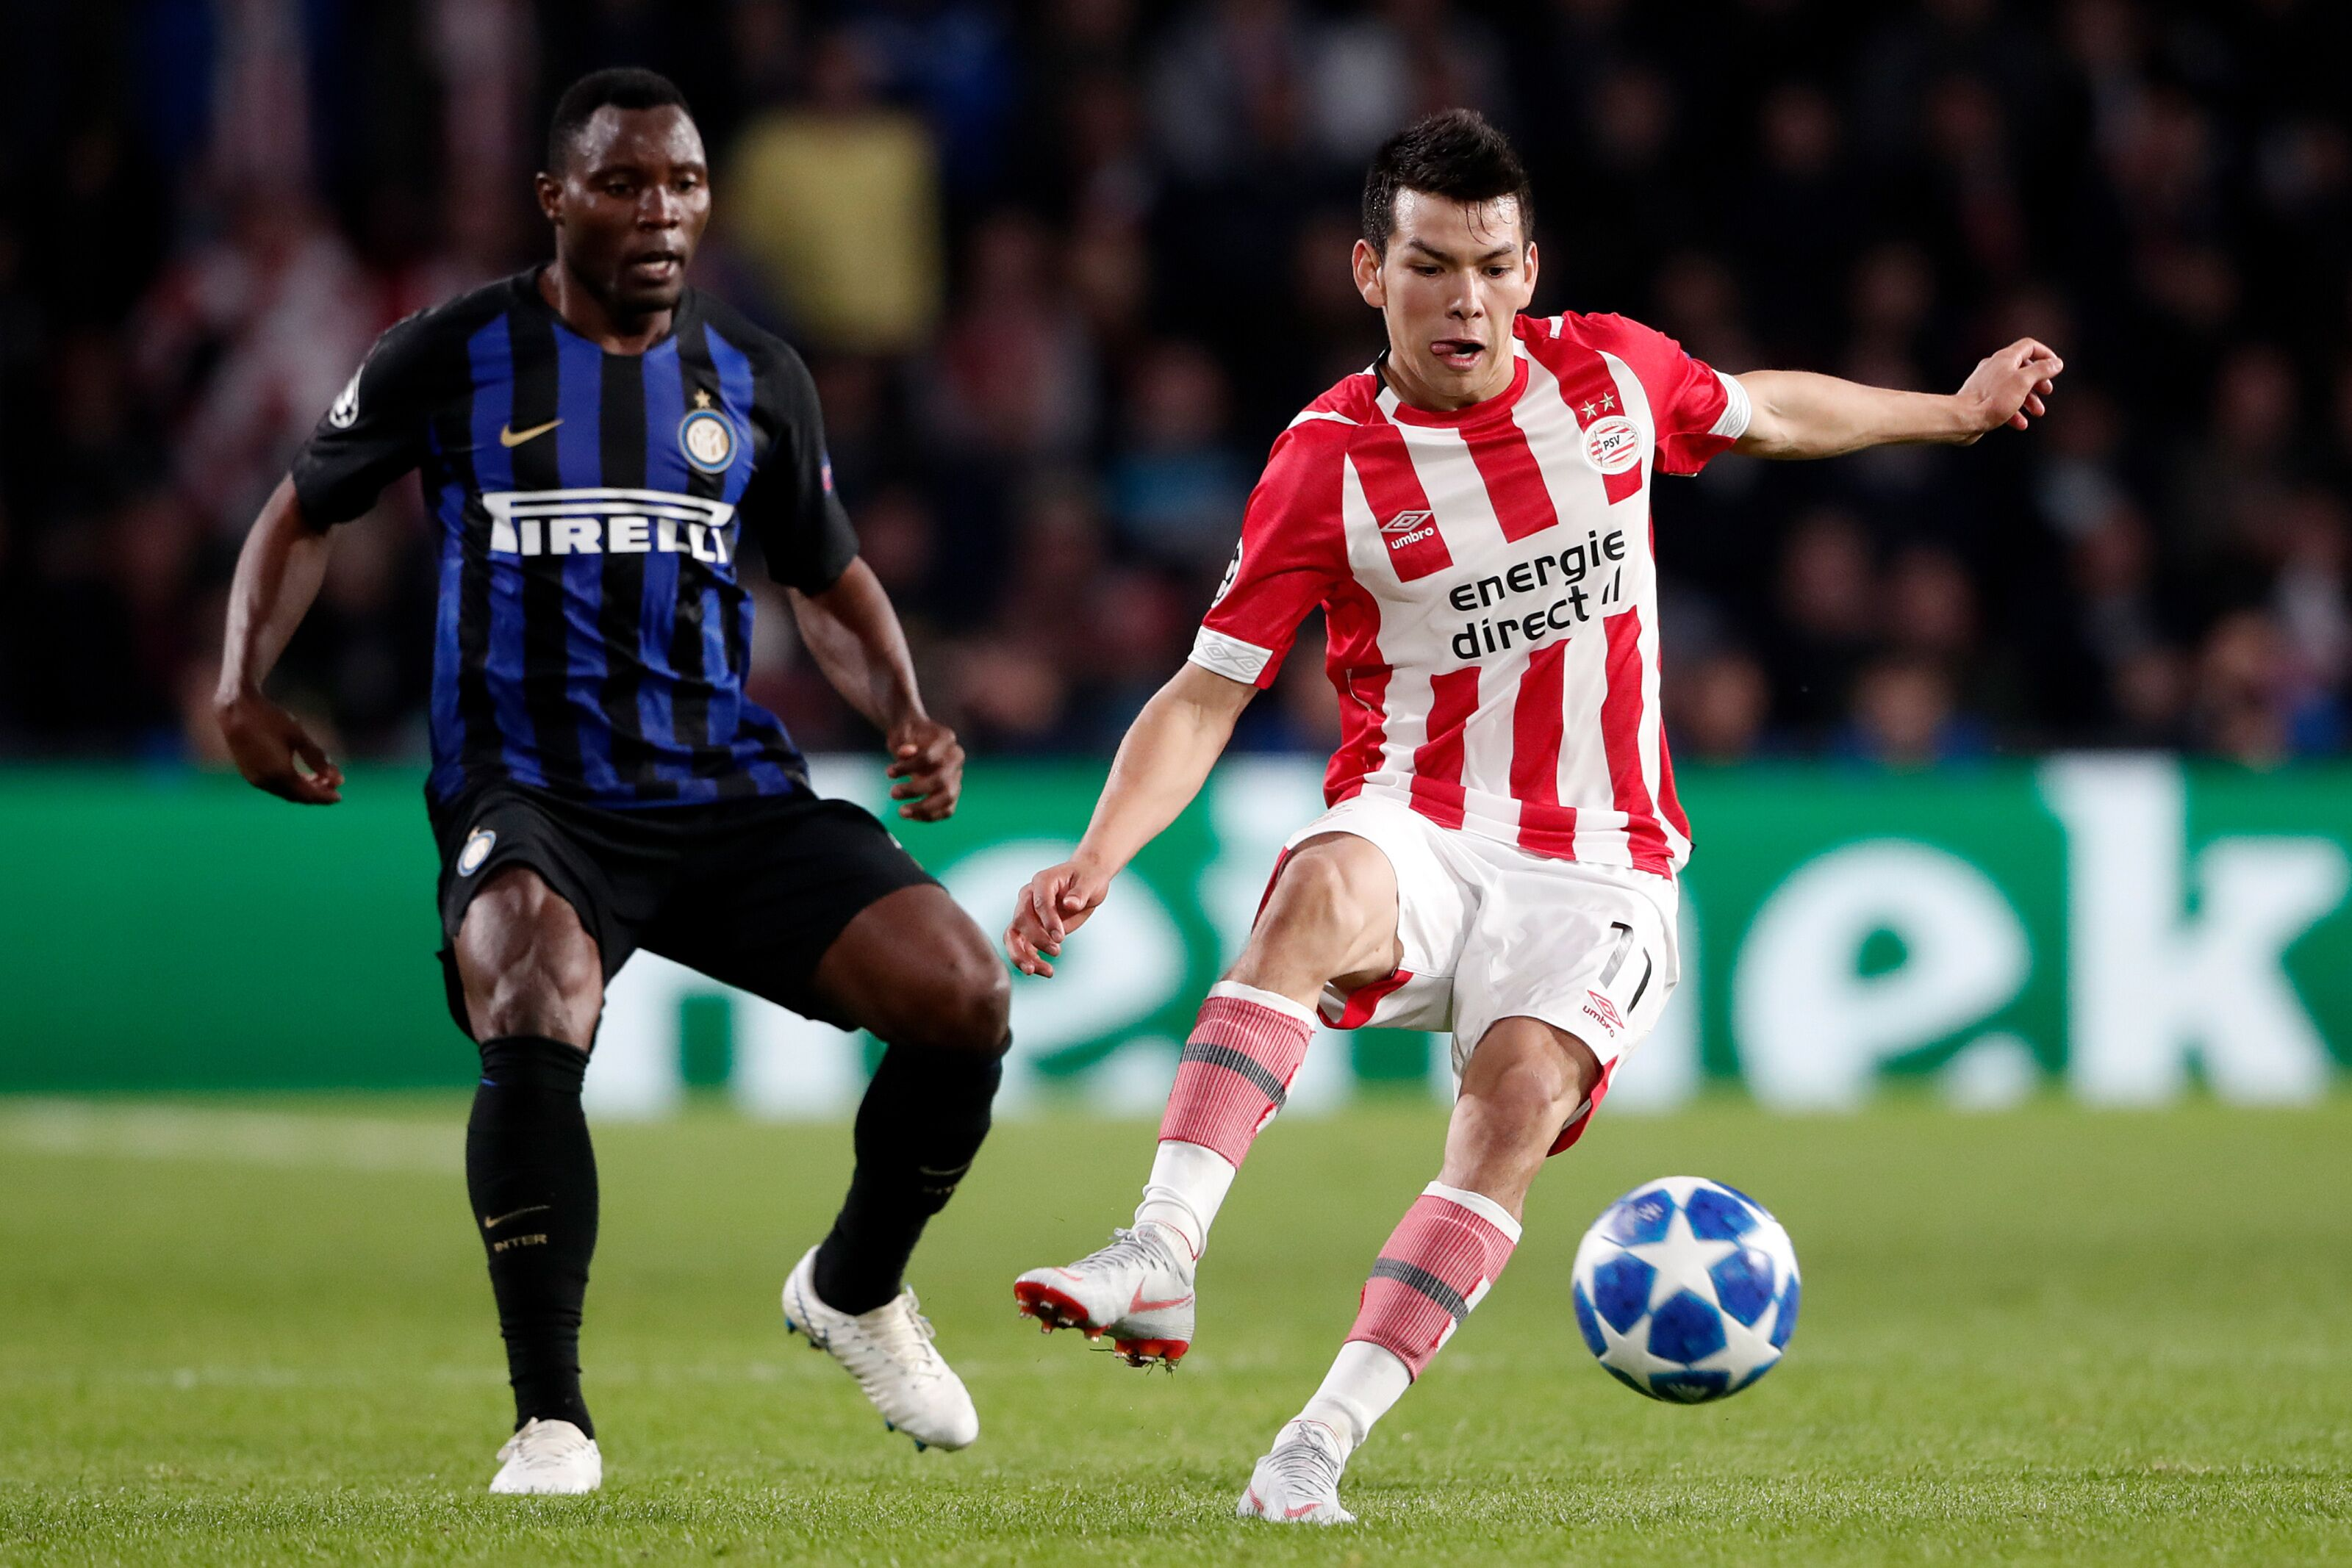 El Tri in UEFA Champions League: Mixed results in Matchday Two